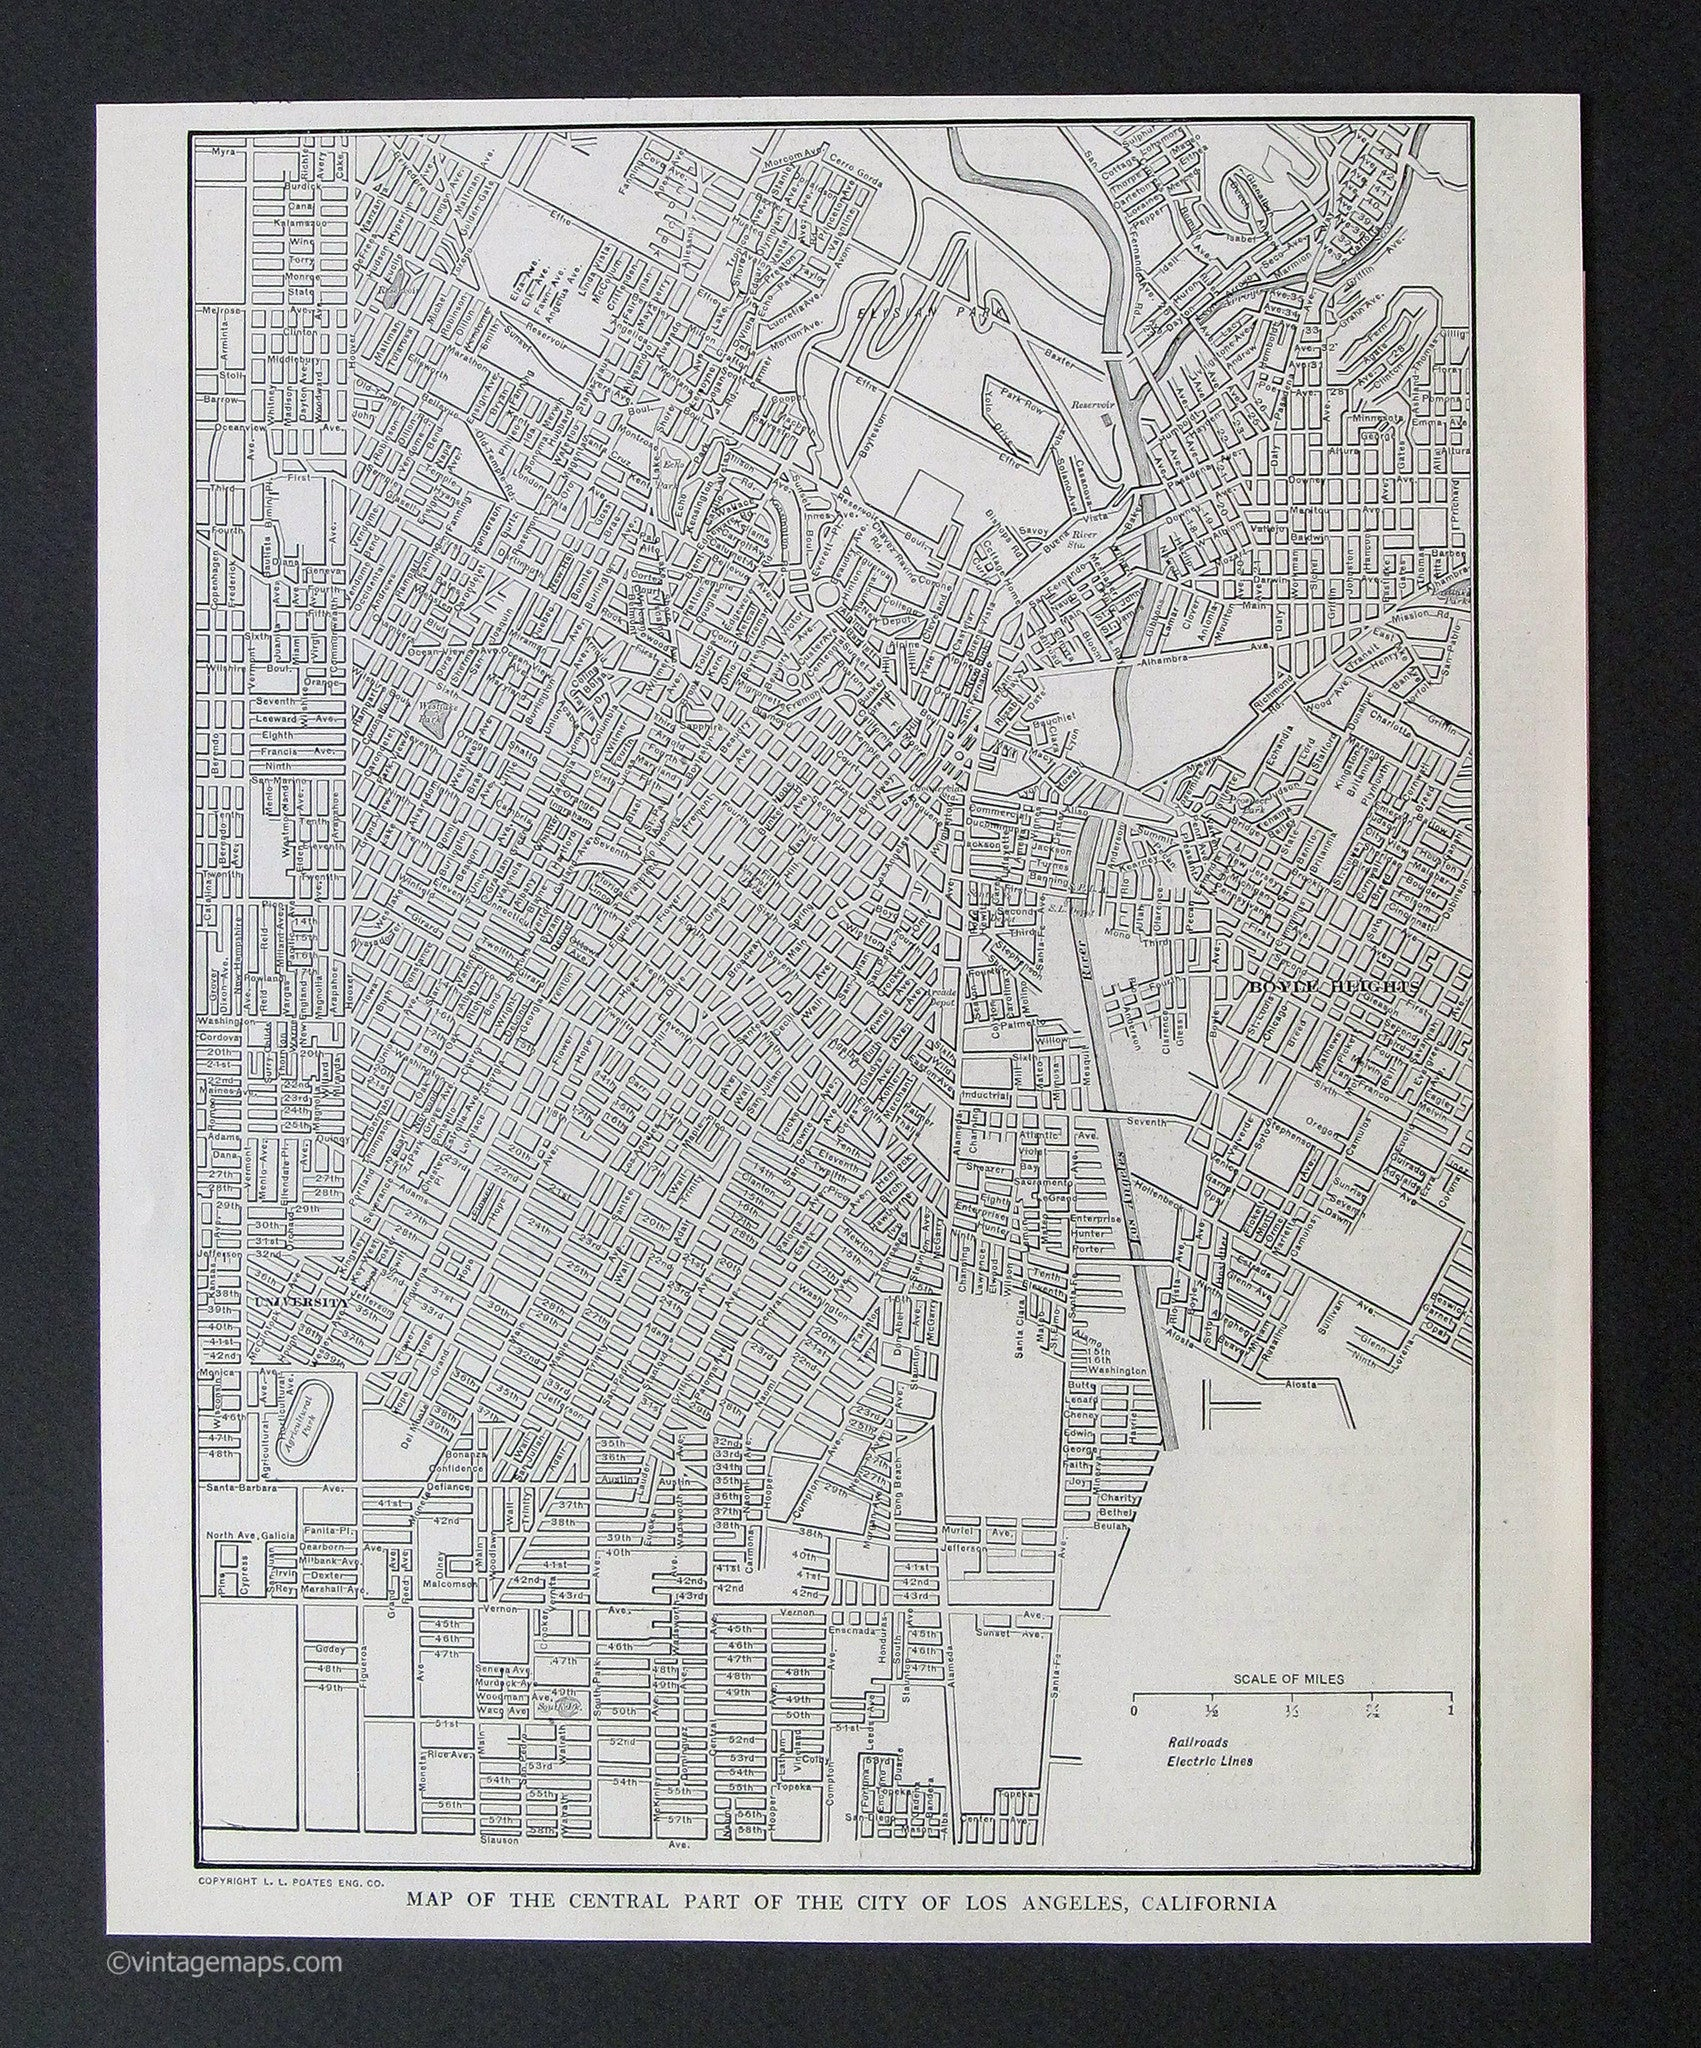 Black And White Maps Vintage Maps - Los angeles map vintage